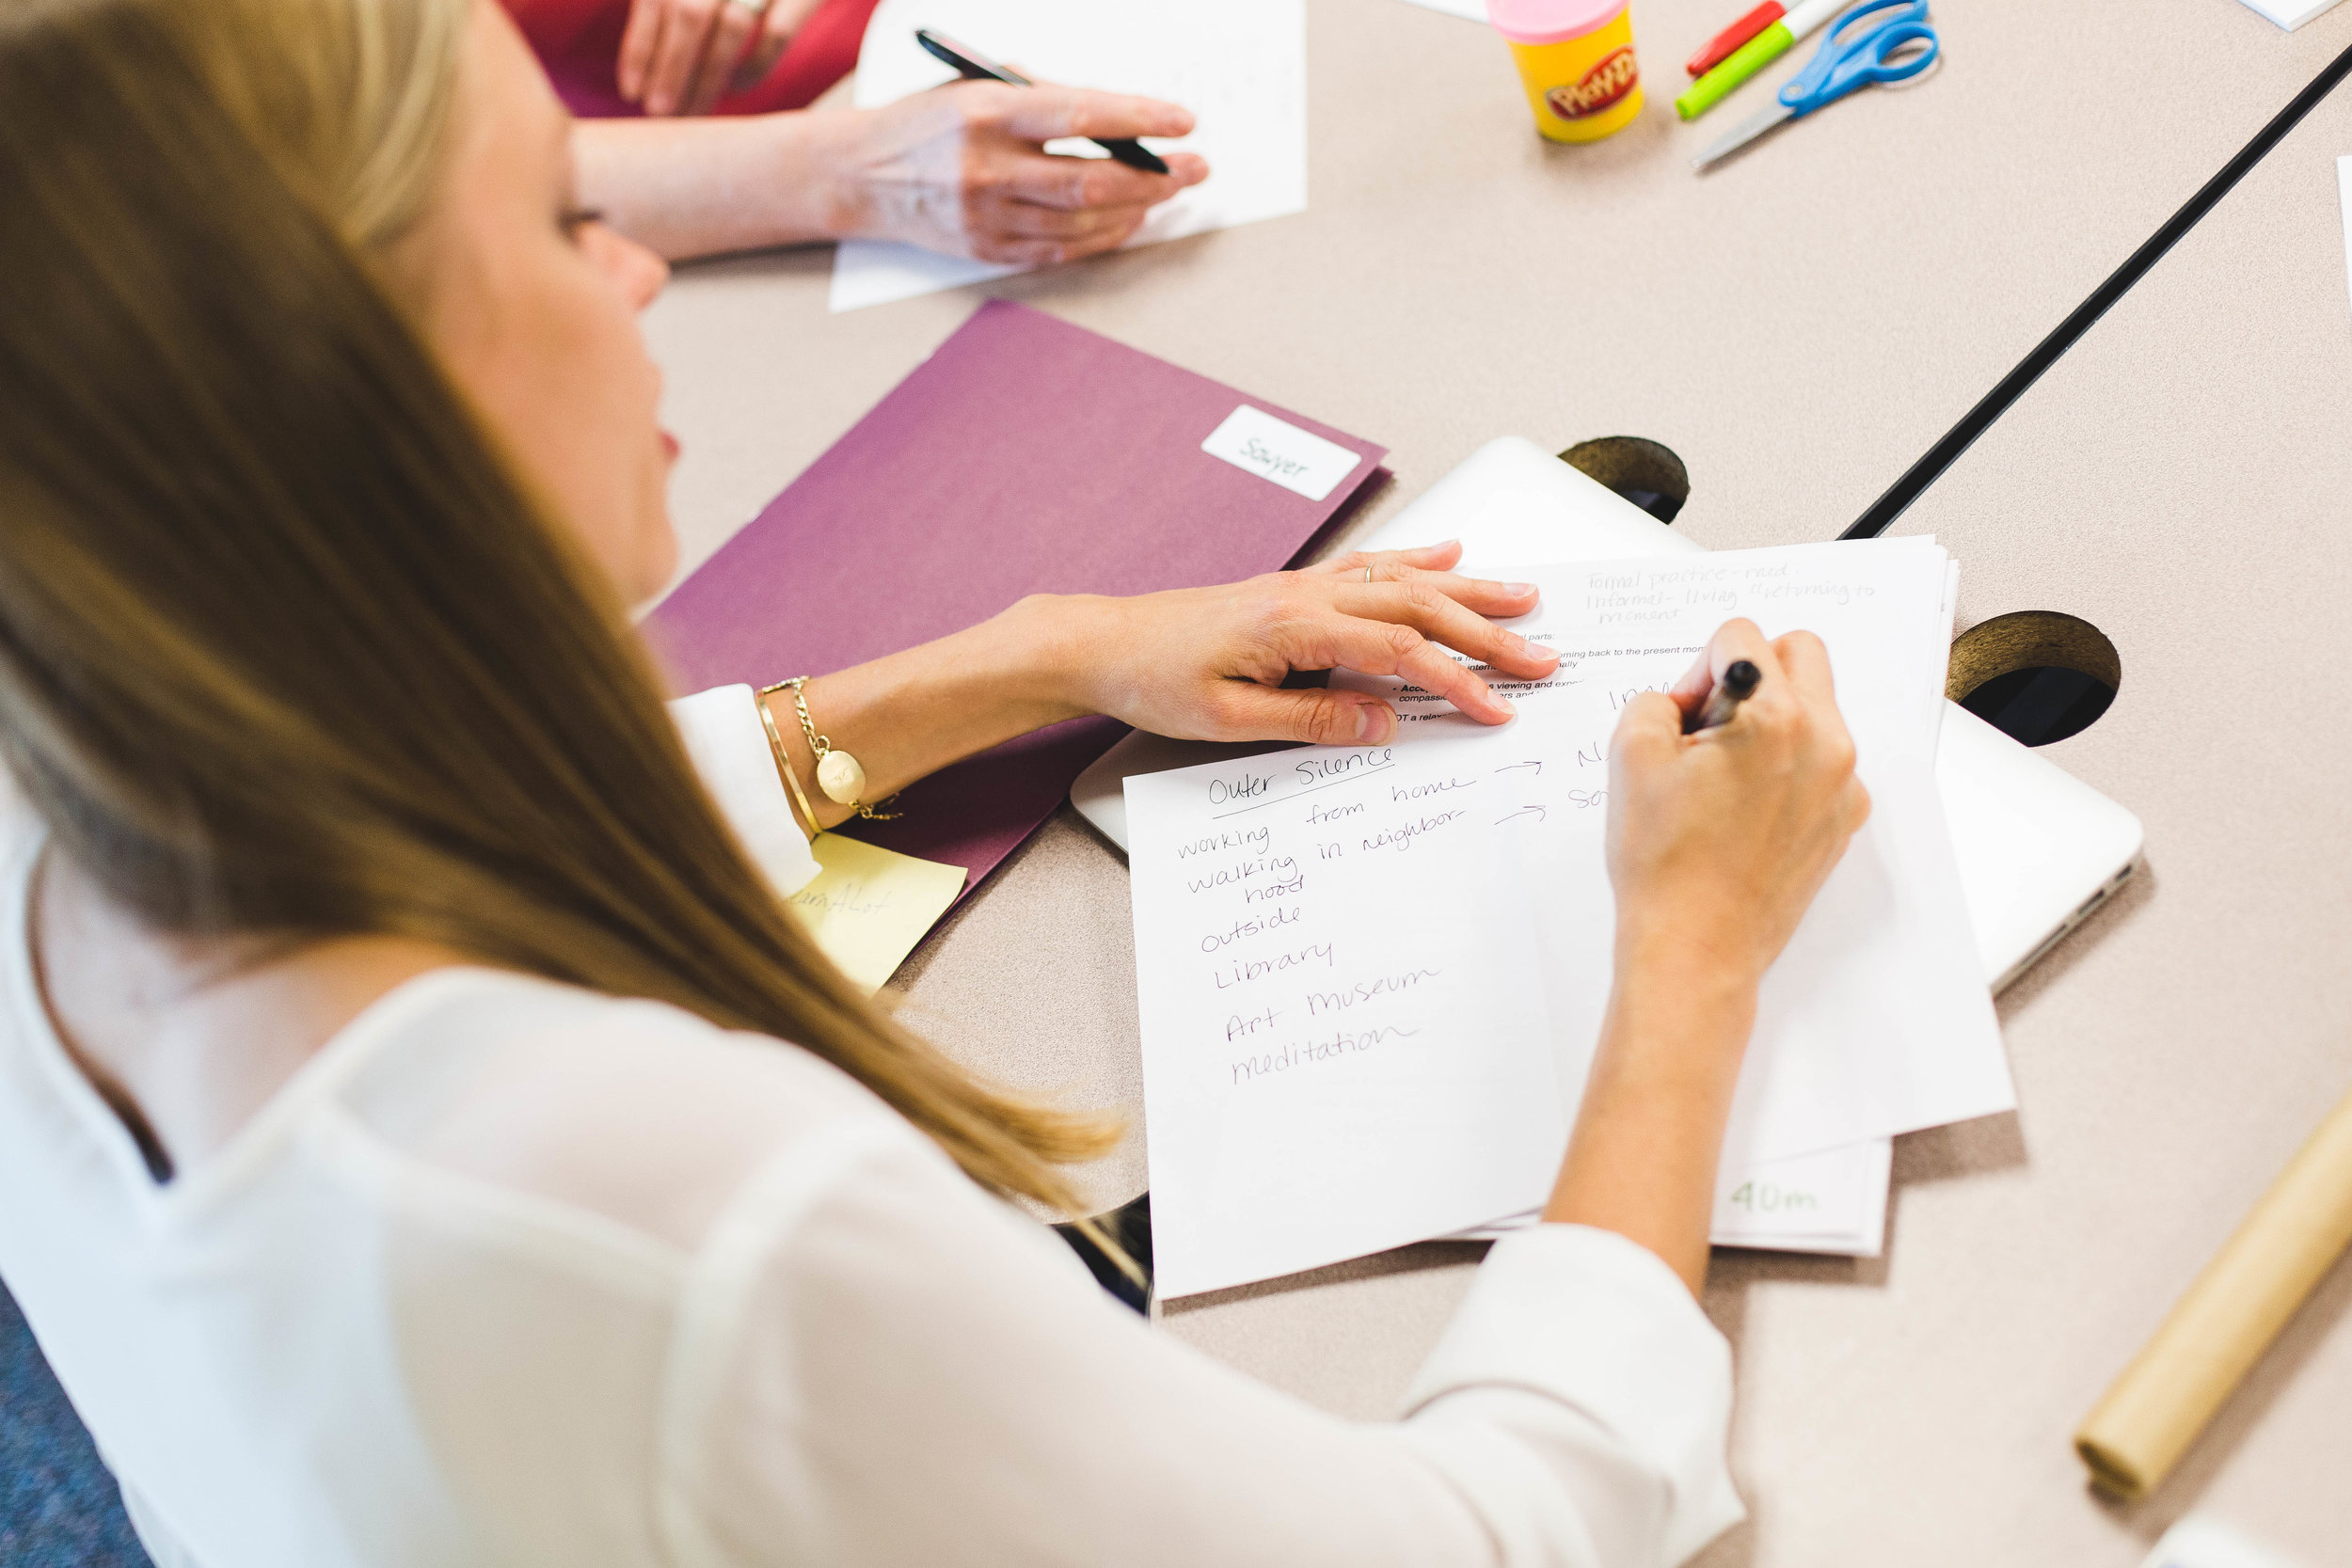 Provide your employees with tools - to better manage stress and build resilience.Workshops can stand alone, or be combined for a half-day or full-day retreat experience.